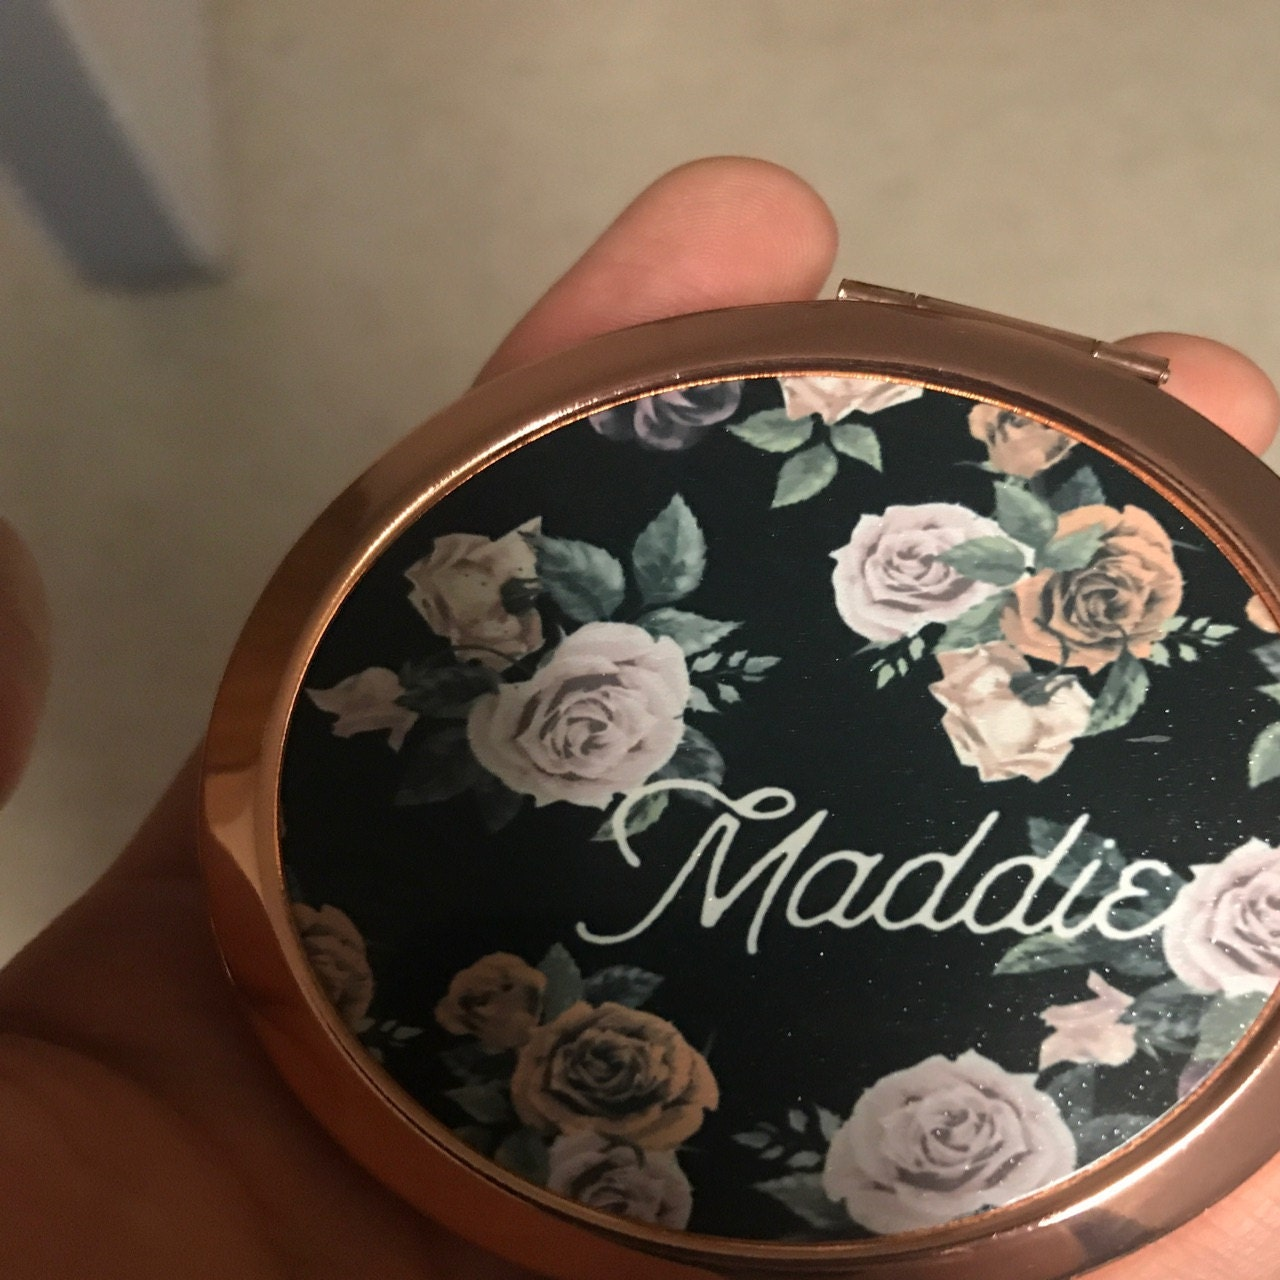 Maddie Hartley added a photo of their purchase